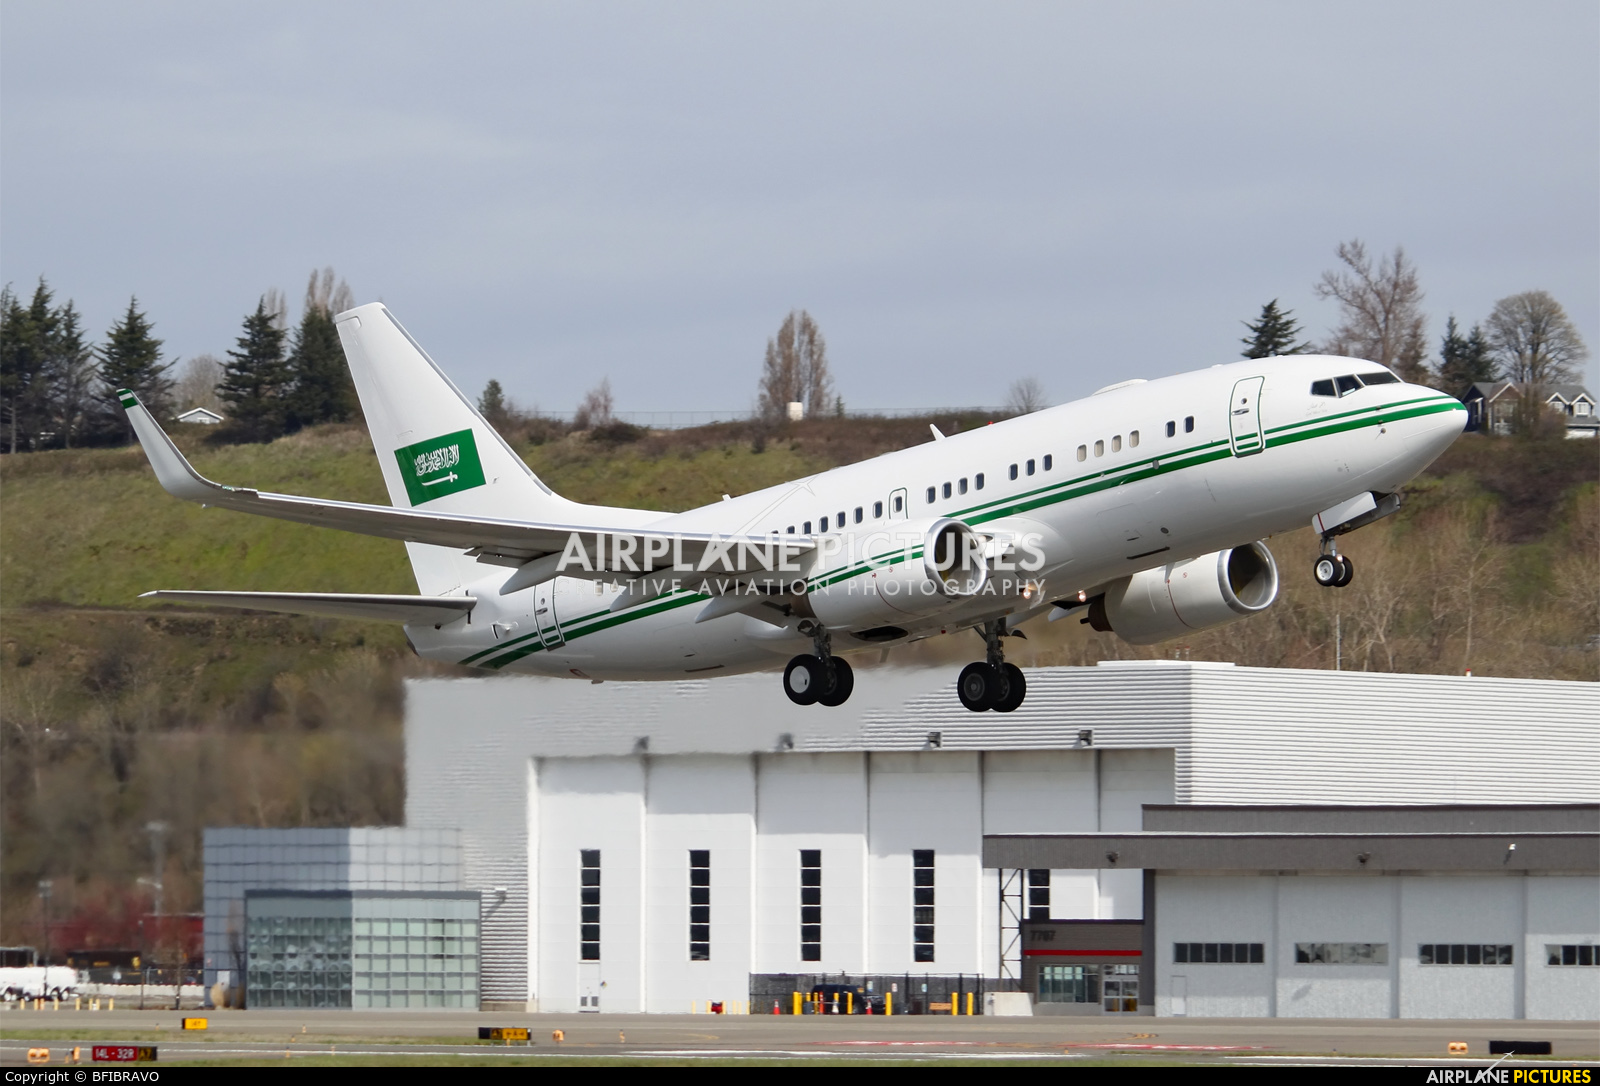 Saudi Arabia - Air Force HZ-101 aircraft at Seattle - Boeing Field / King County Intl